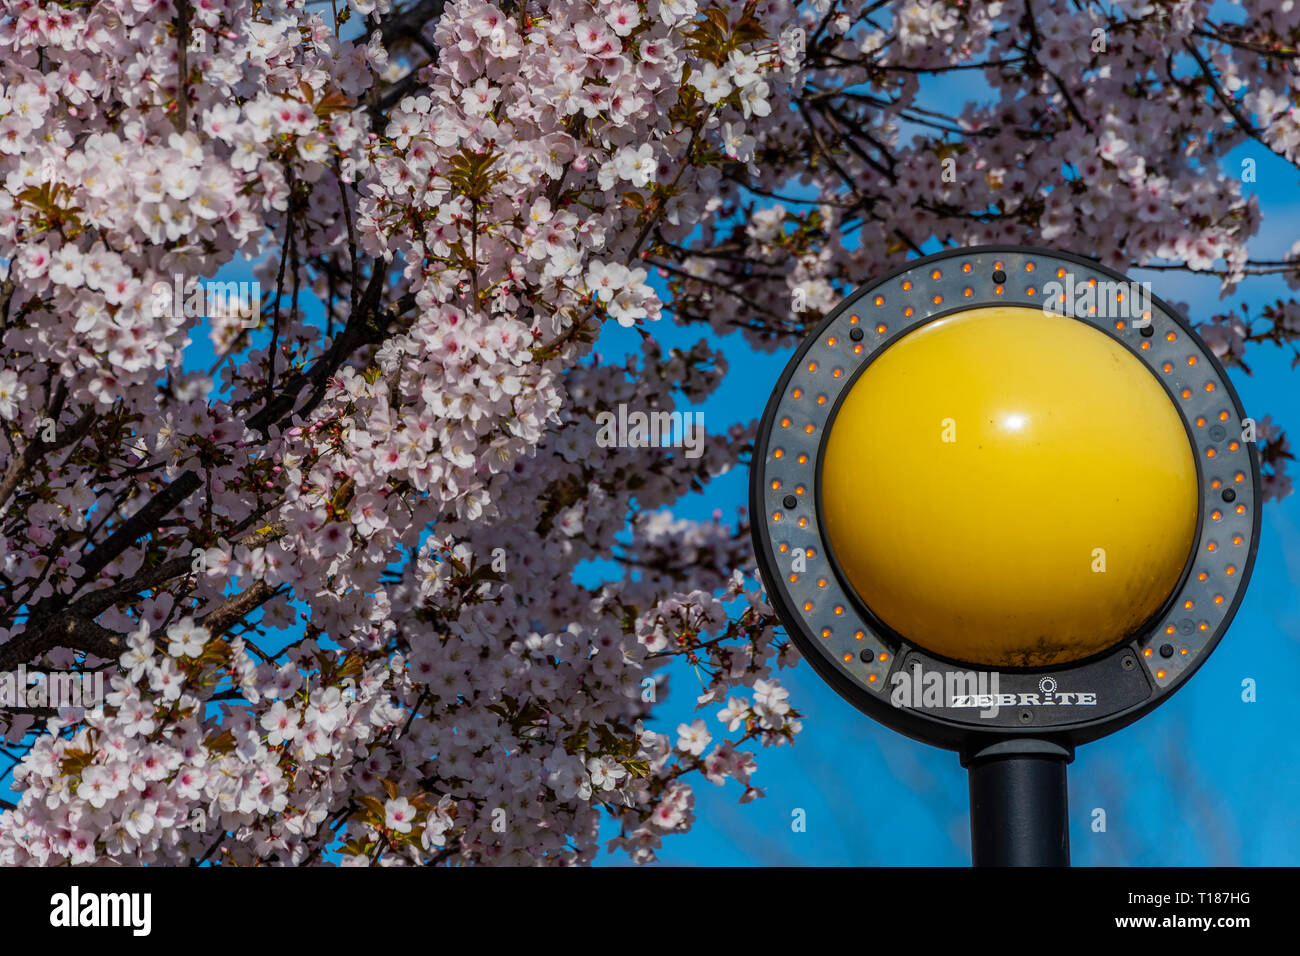 London, UK. 24th Mar 2019. Spring blossom and a blue sky at a Zebra crossing in SW London. Credit: Guy Bell/Alamy Live News Stock Photo